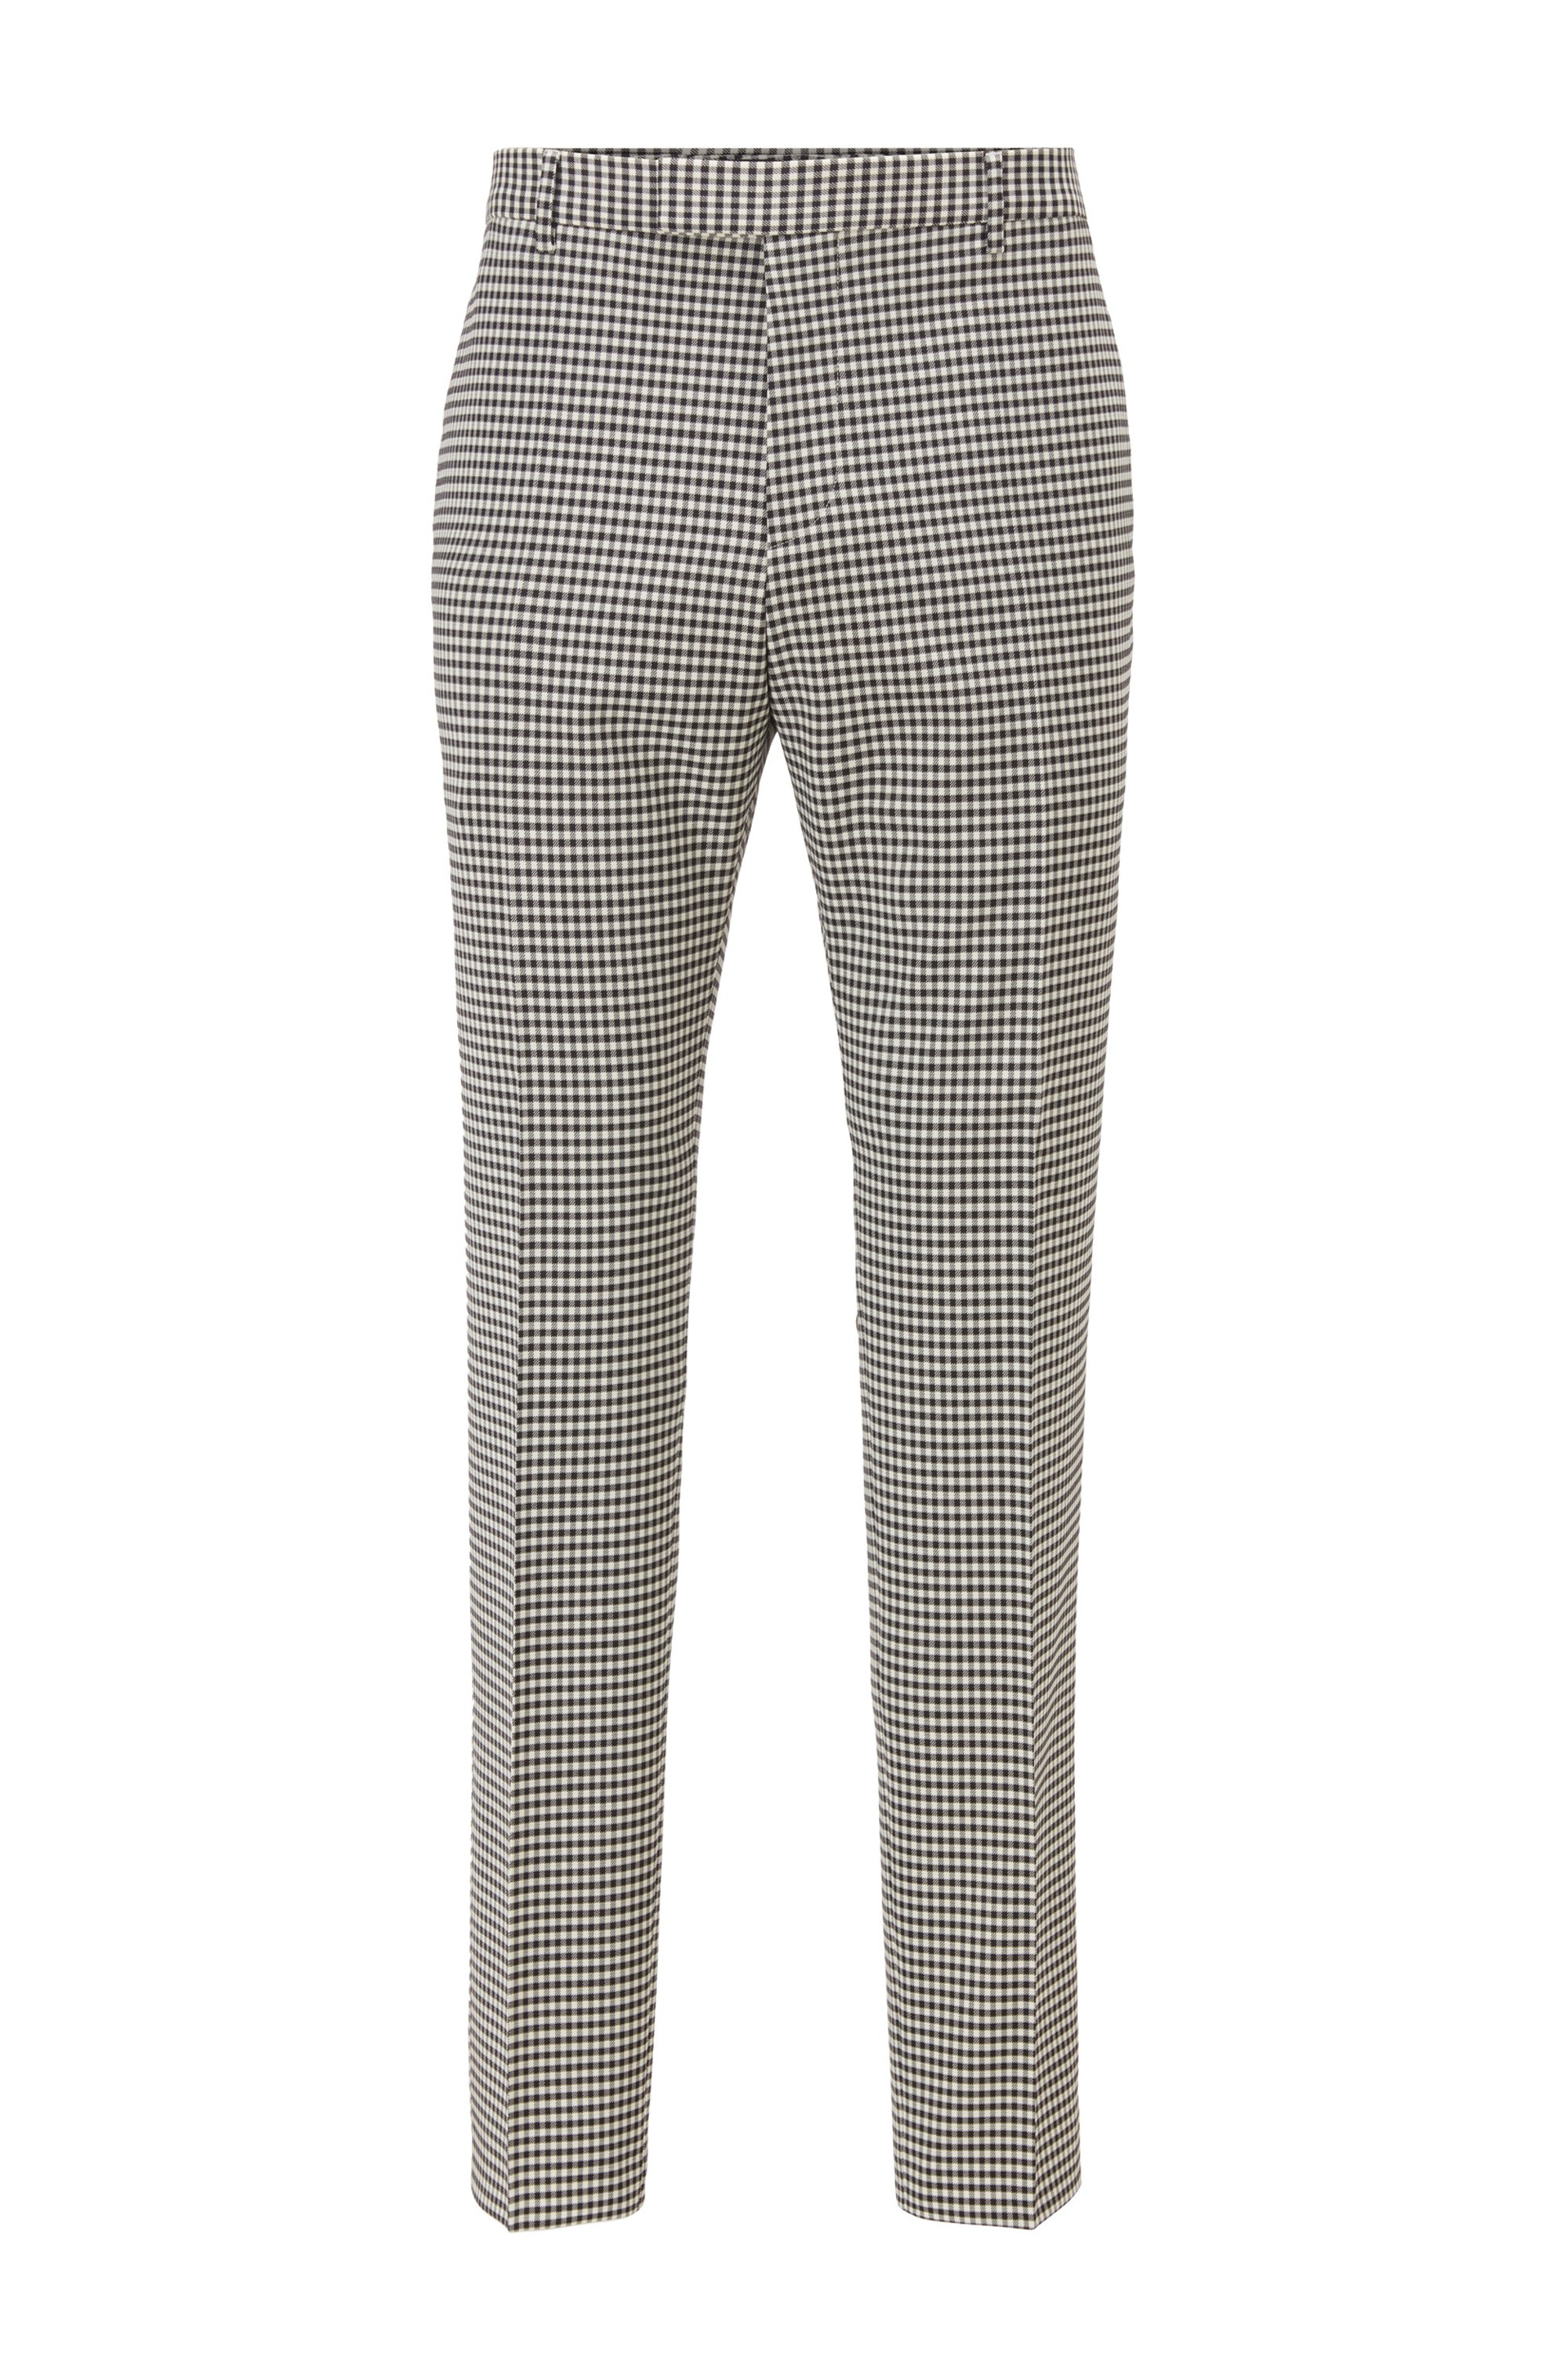 Extra-slim-fit trousers in patterned stretch fabric, Black Patterned